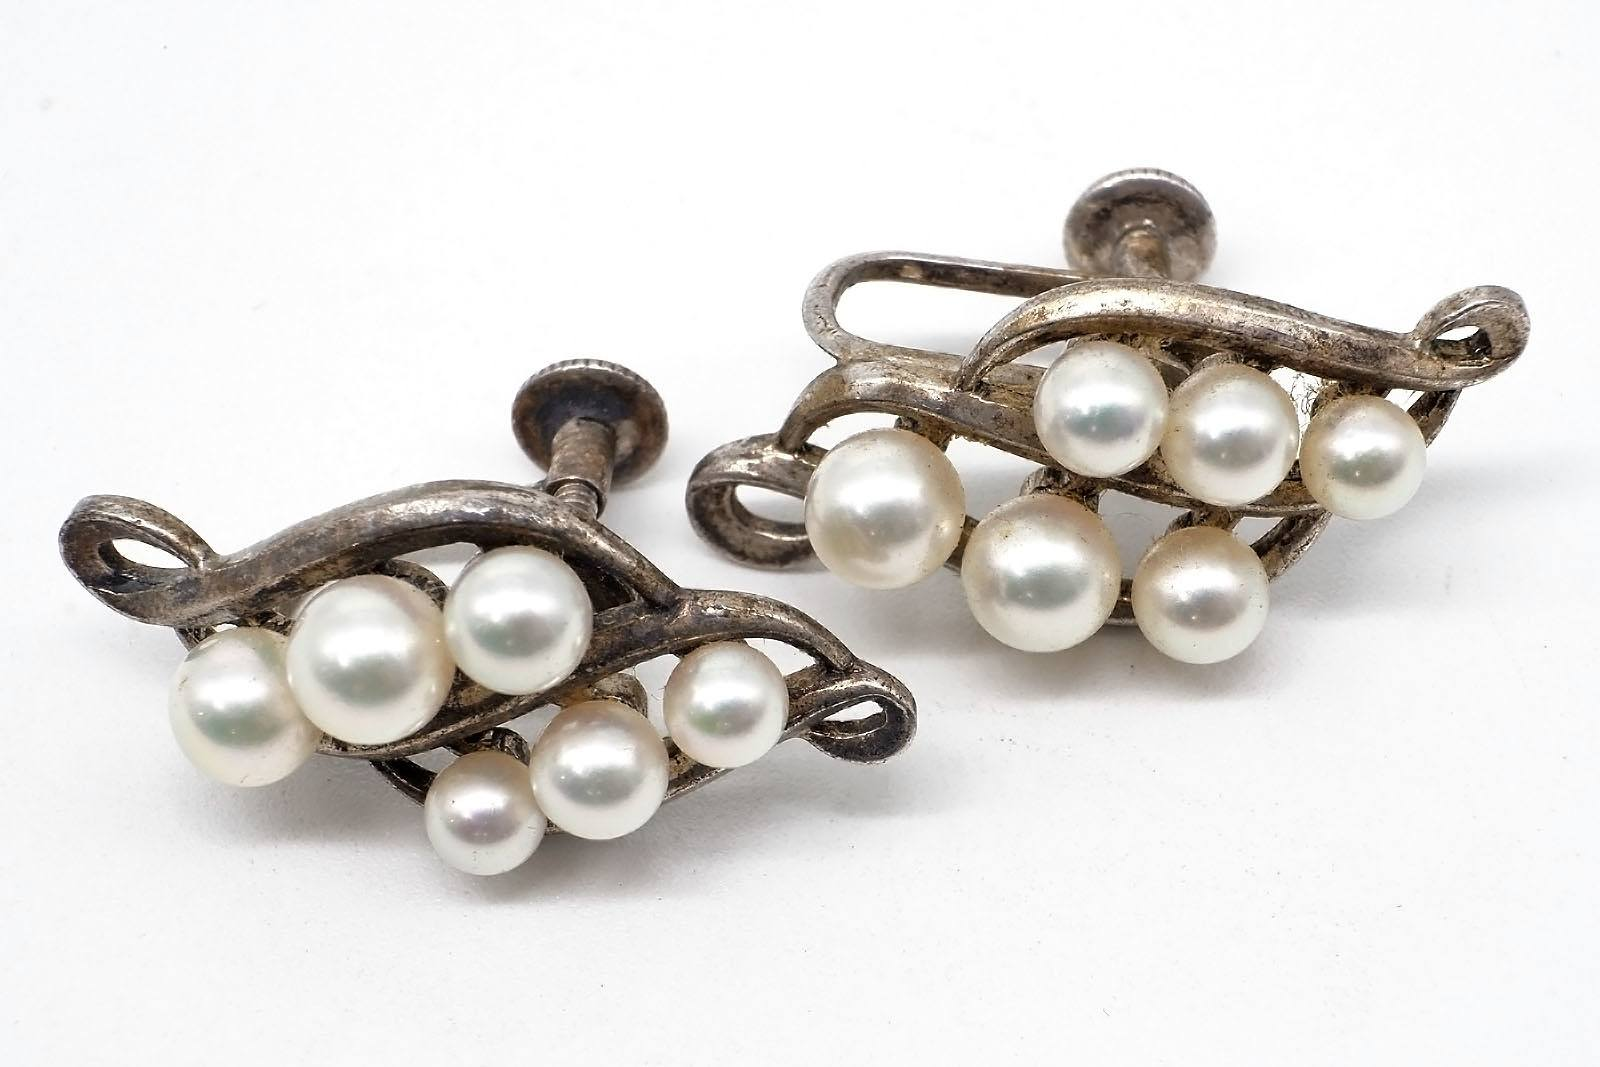 'Silver Mikimoto Screw on Earrings, with Six Round Cultured Pearls, White with Very High Lustre '